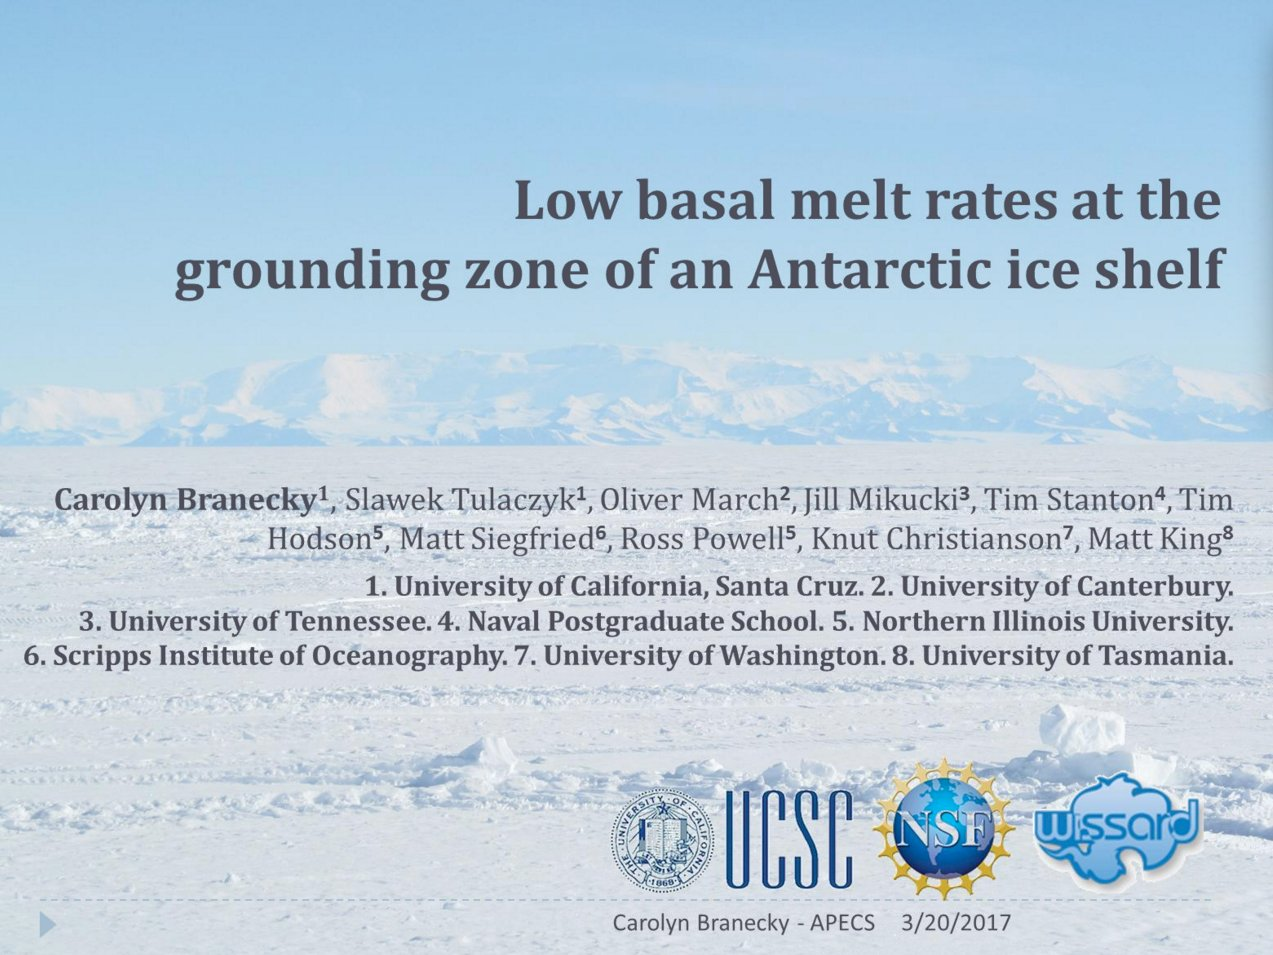 From the #Arctic to the #Antarctic! Carolyn Branecky on Low Basal Melt Rates at the Grounding Zone of an Antarctic Ice Shelf #APECS17 https://t.co/KYu2rHz6IX